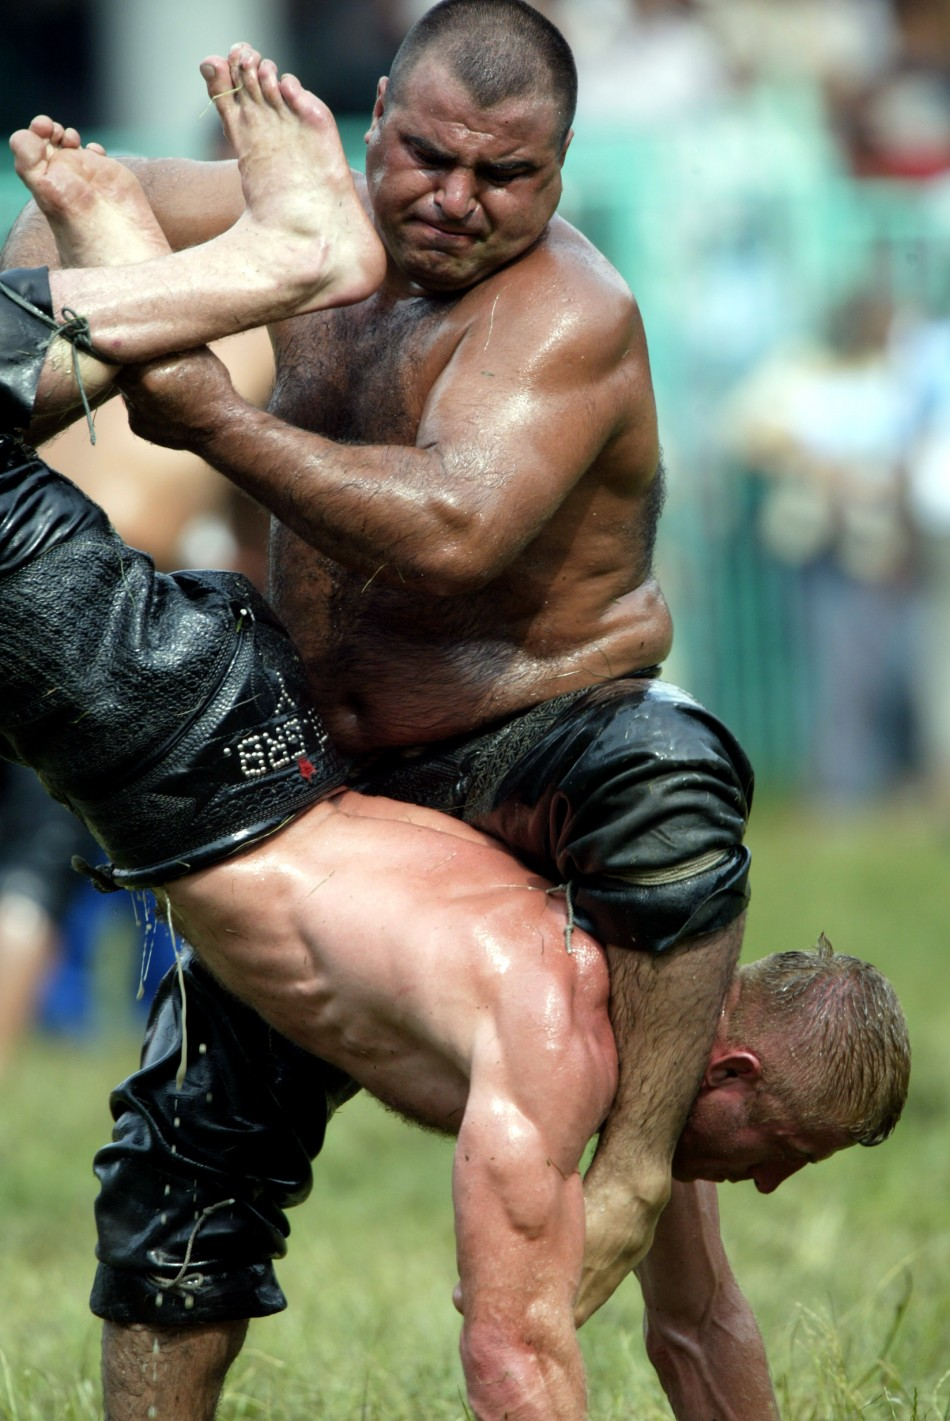 Turkey's Greasy Wrestling Competition